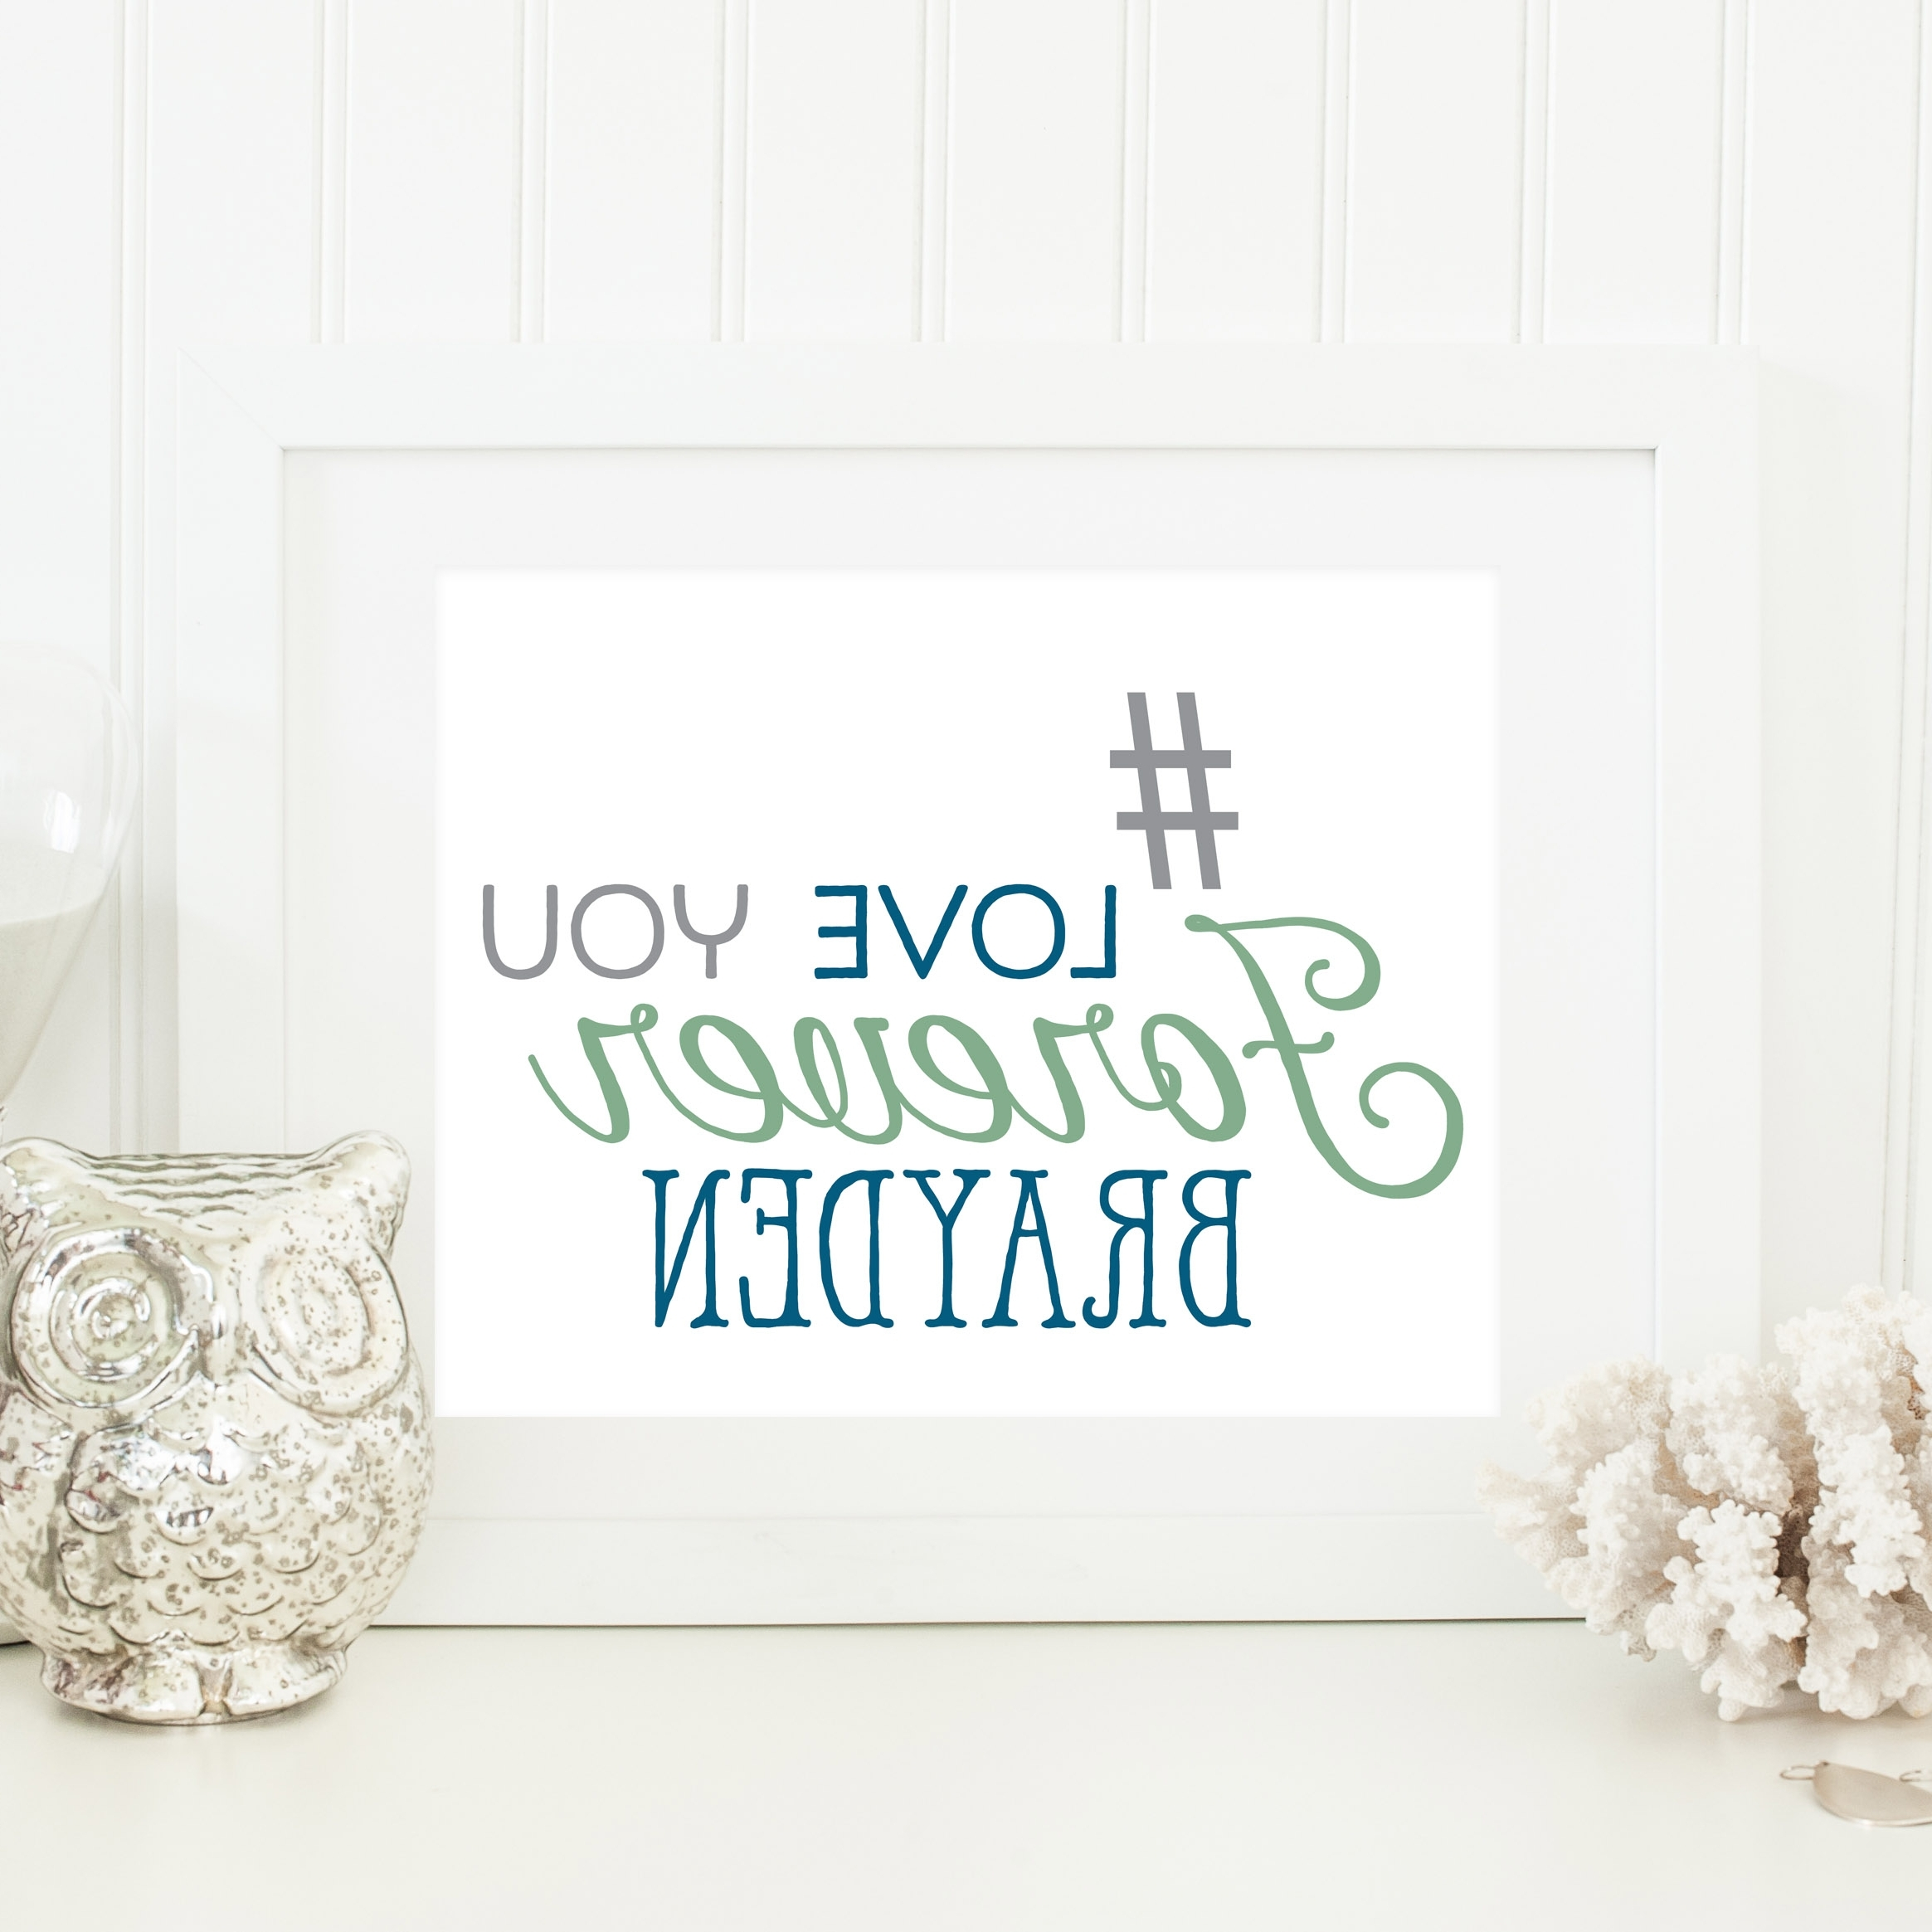 Personalized Baby Wall Art Regarding Most Recent Hashtag Art – Love You Forever (View 9 of 15)